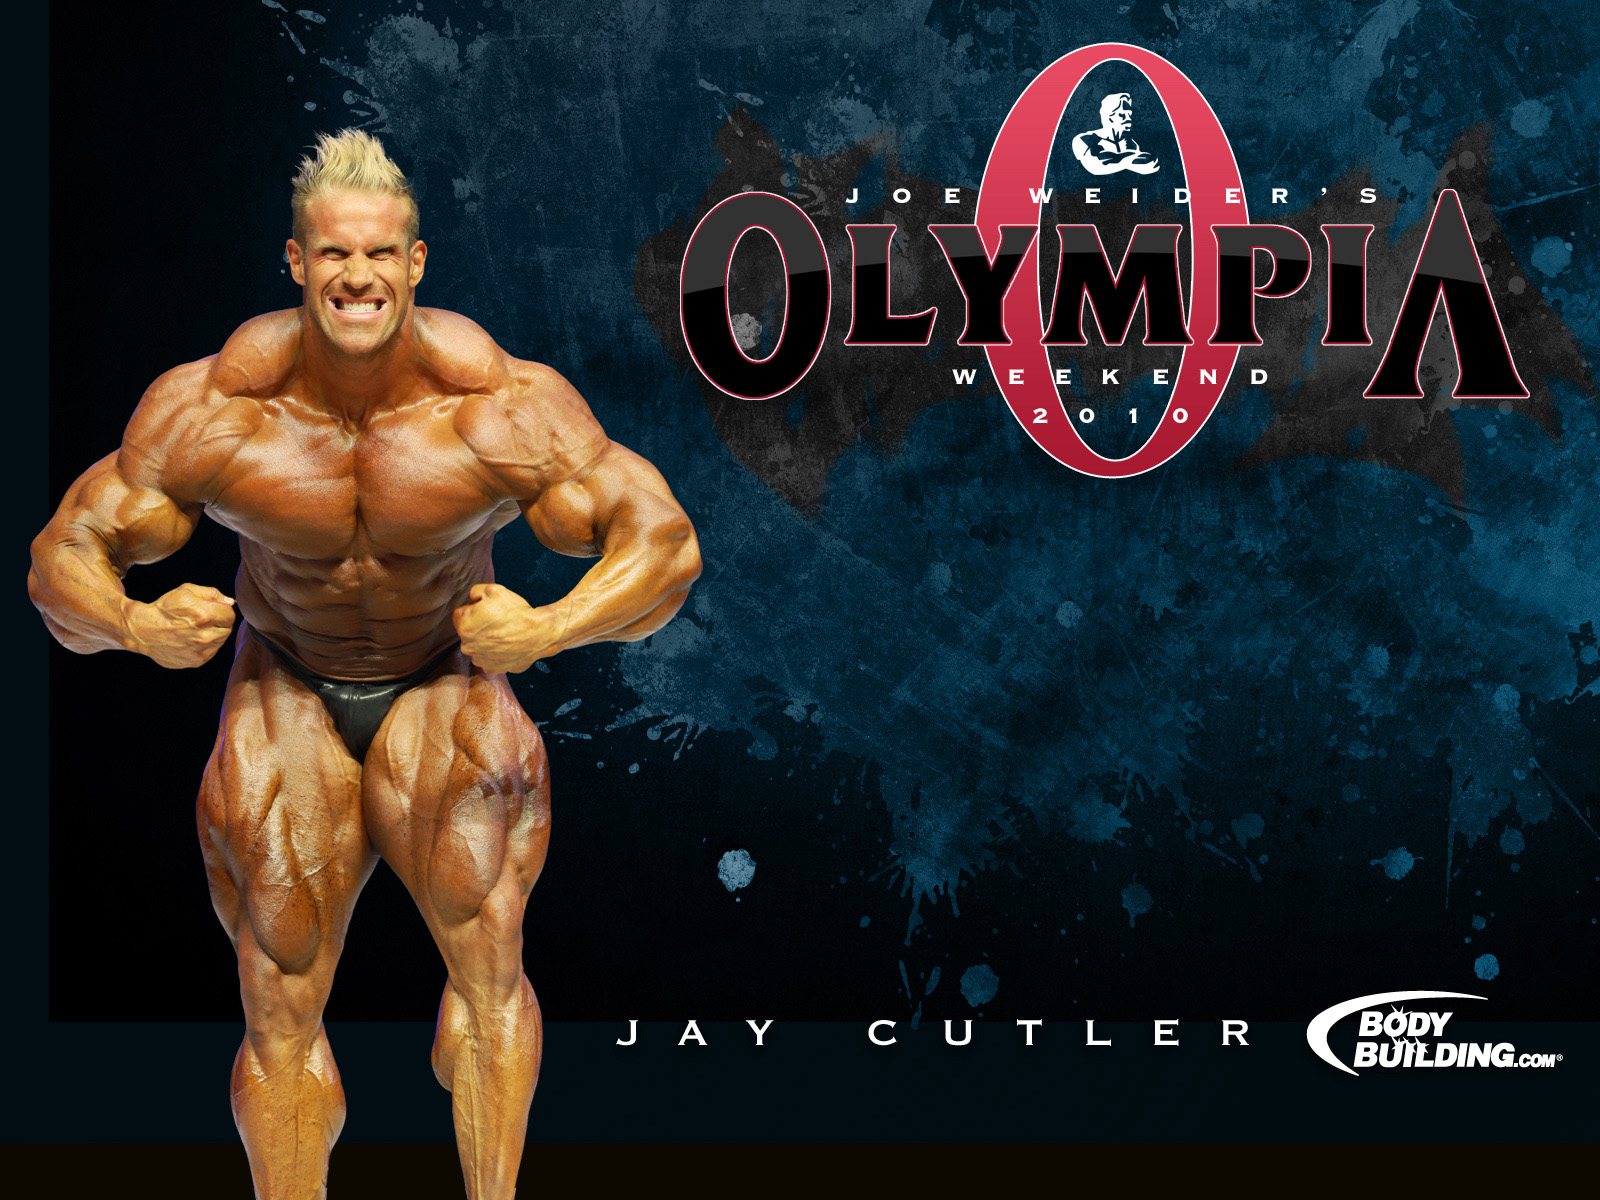 Wallpaper Jay Cutler Wallpaper 2010